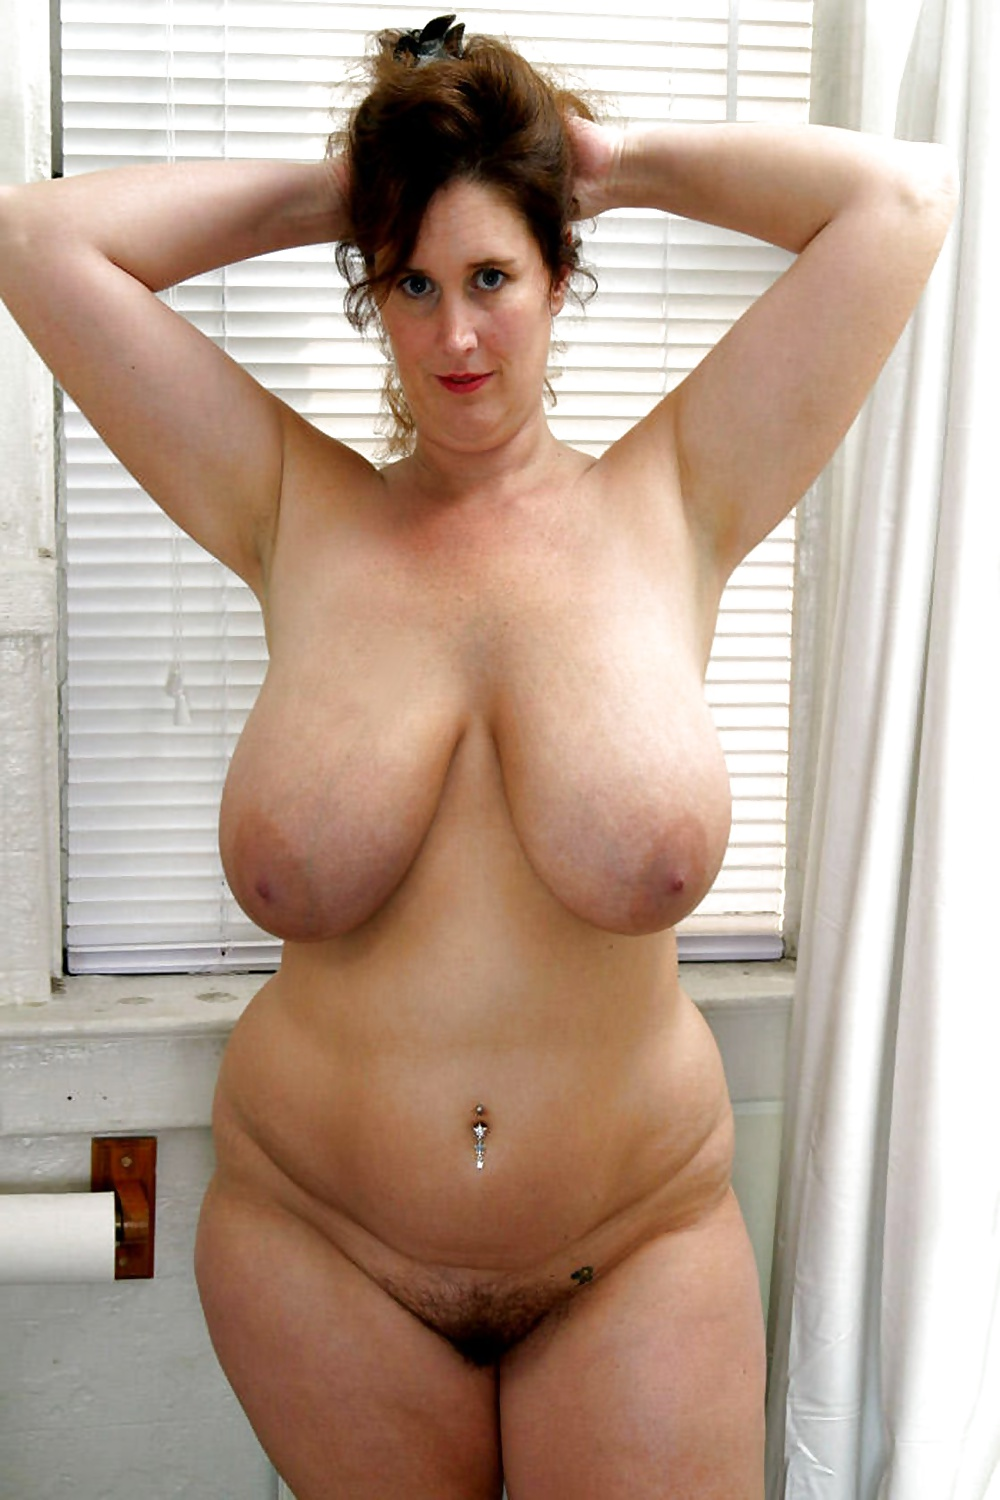 Curvy Granny Pictures Search